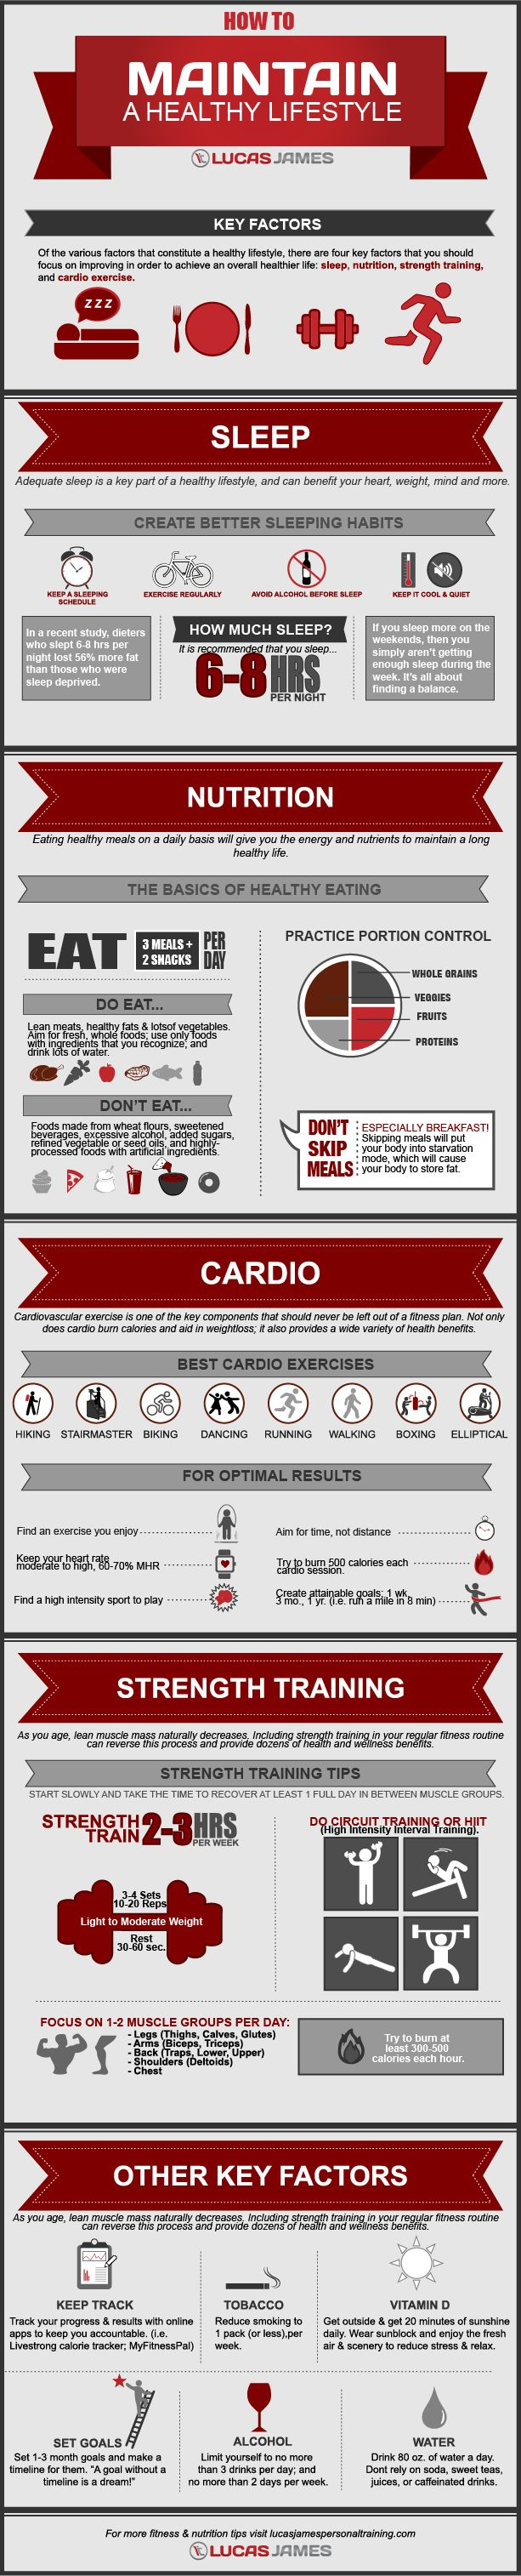 This fitness infographic will help you live a healthy lifestyle . When you are fit and healthy you have much more energy and a much better outlook on life without having to worry about health problems.  http://lucasjamespersonaltraining.com/maintain-healthy-lifestyle/3804/